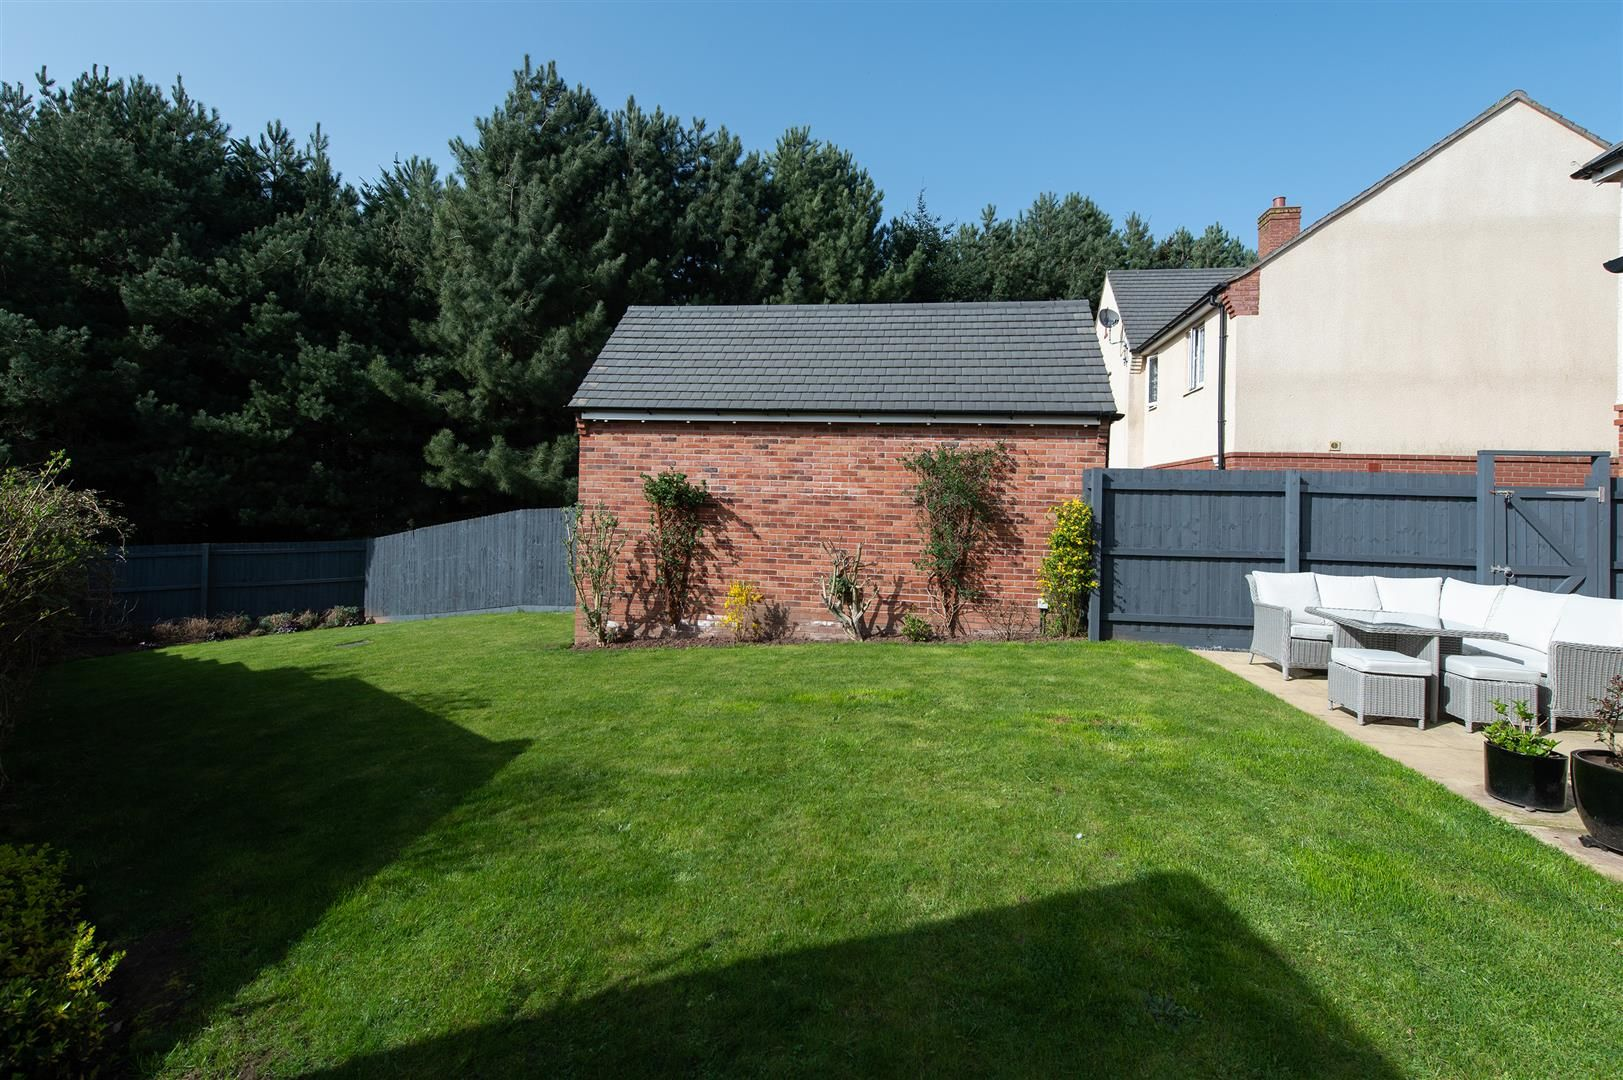 3 bed detached for sale in Hagley 26